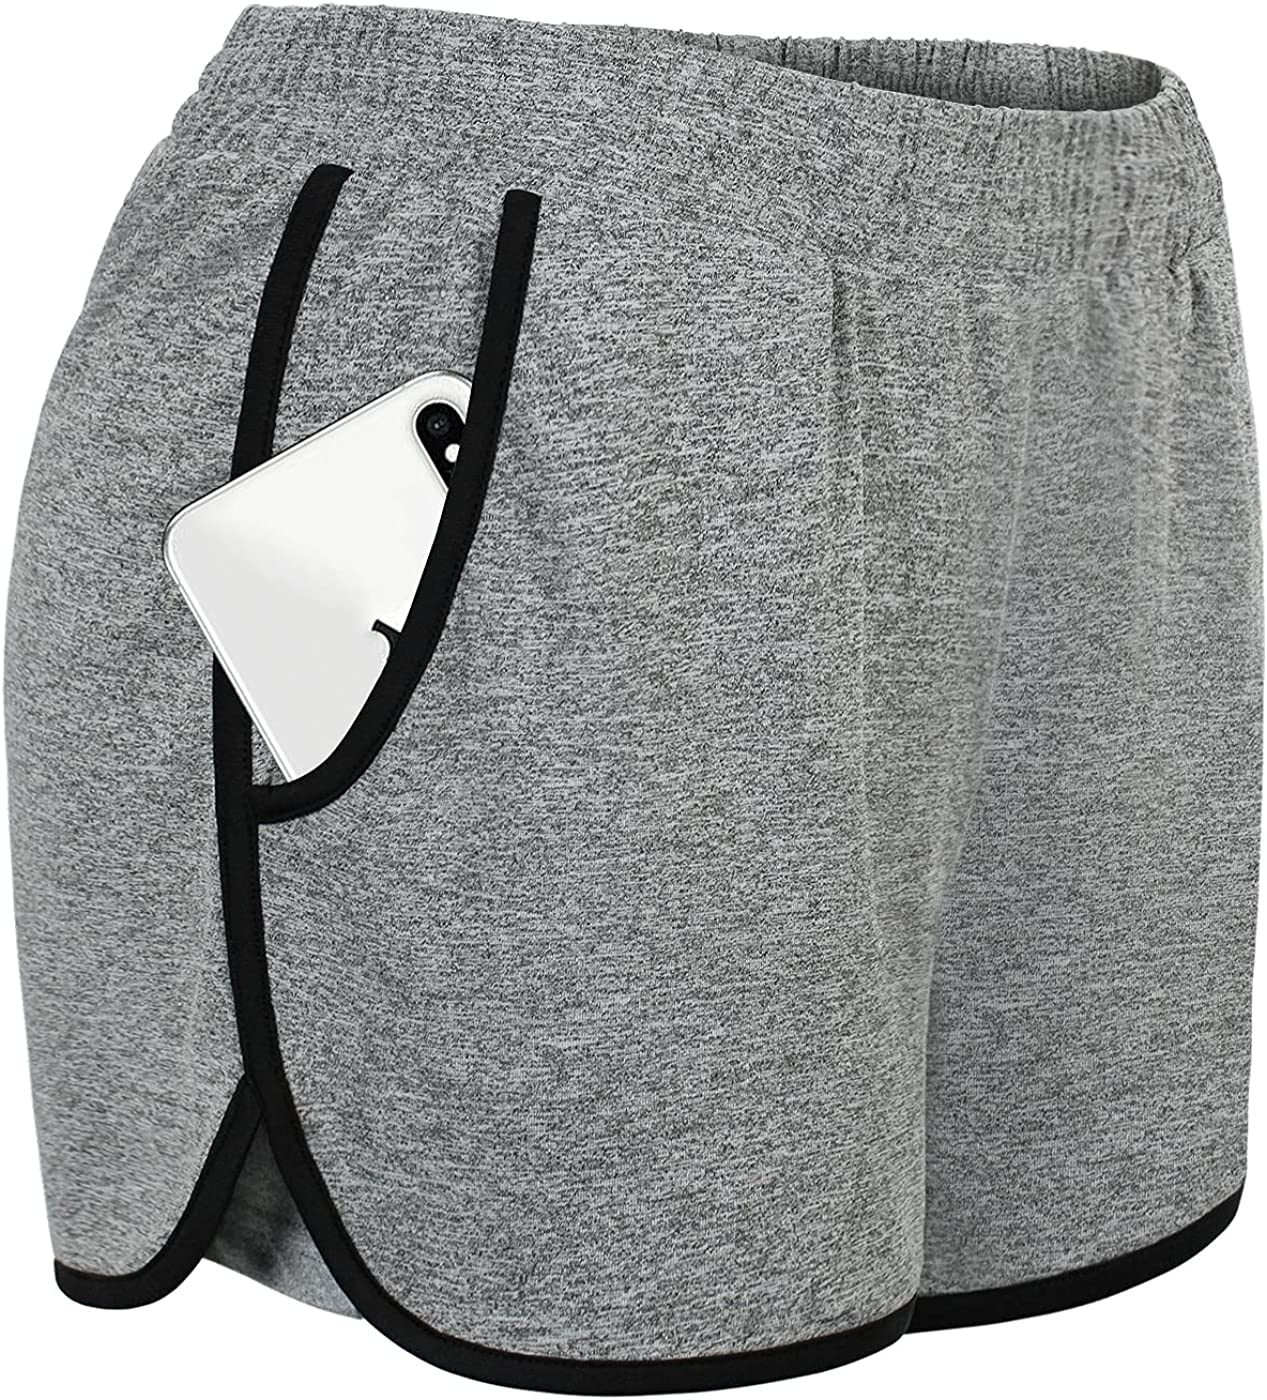 Ouncuty Womens Cozy Elastic Waist Sports Running Gym Workout Shorts with Pockets at  Women's Clothing store